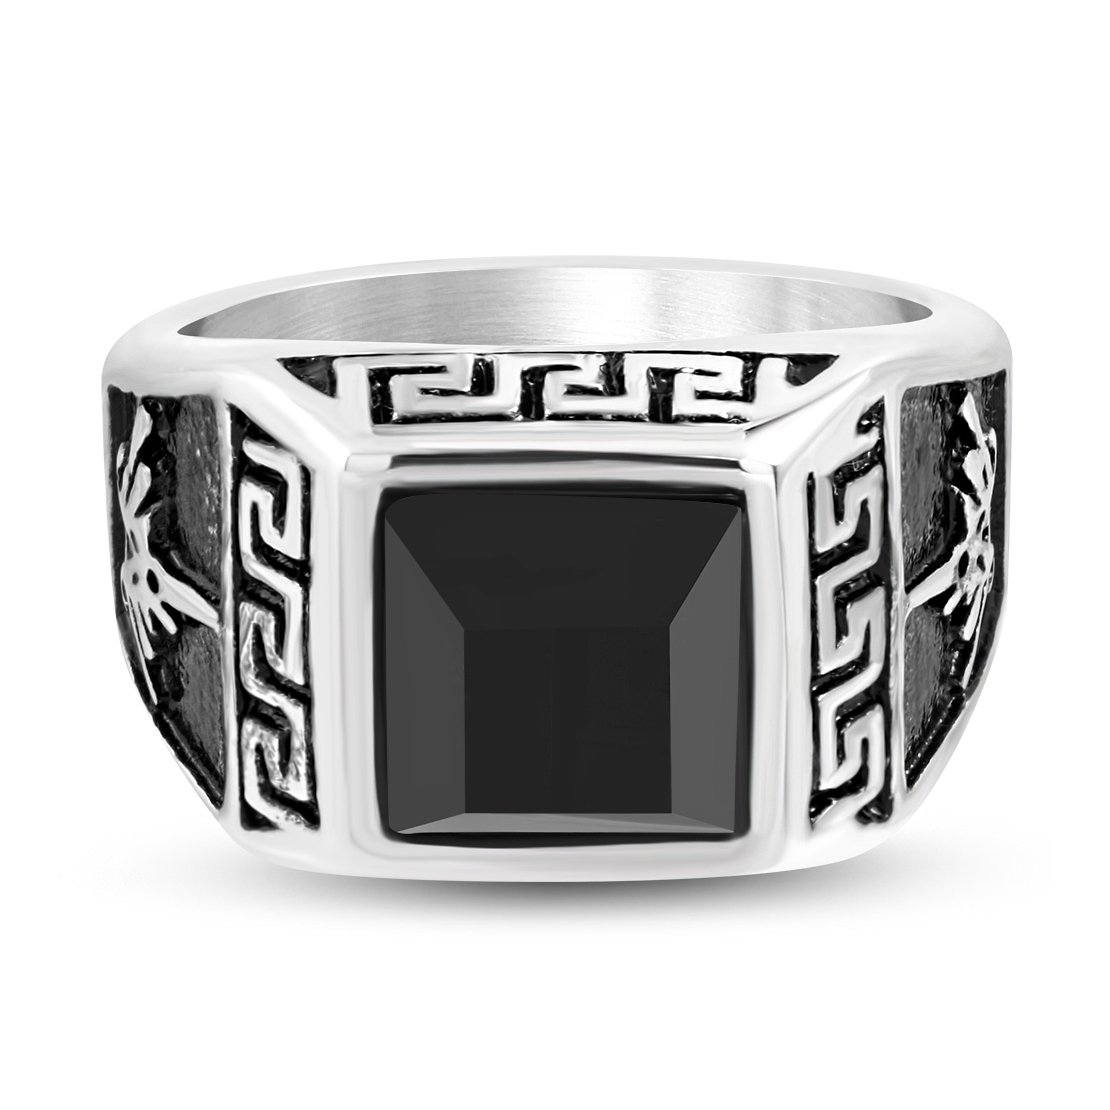 Stainless Steel 2 Color Greek Key Bezel-Set Square Biker Ring with Black Glass Stone